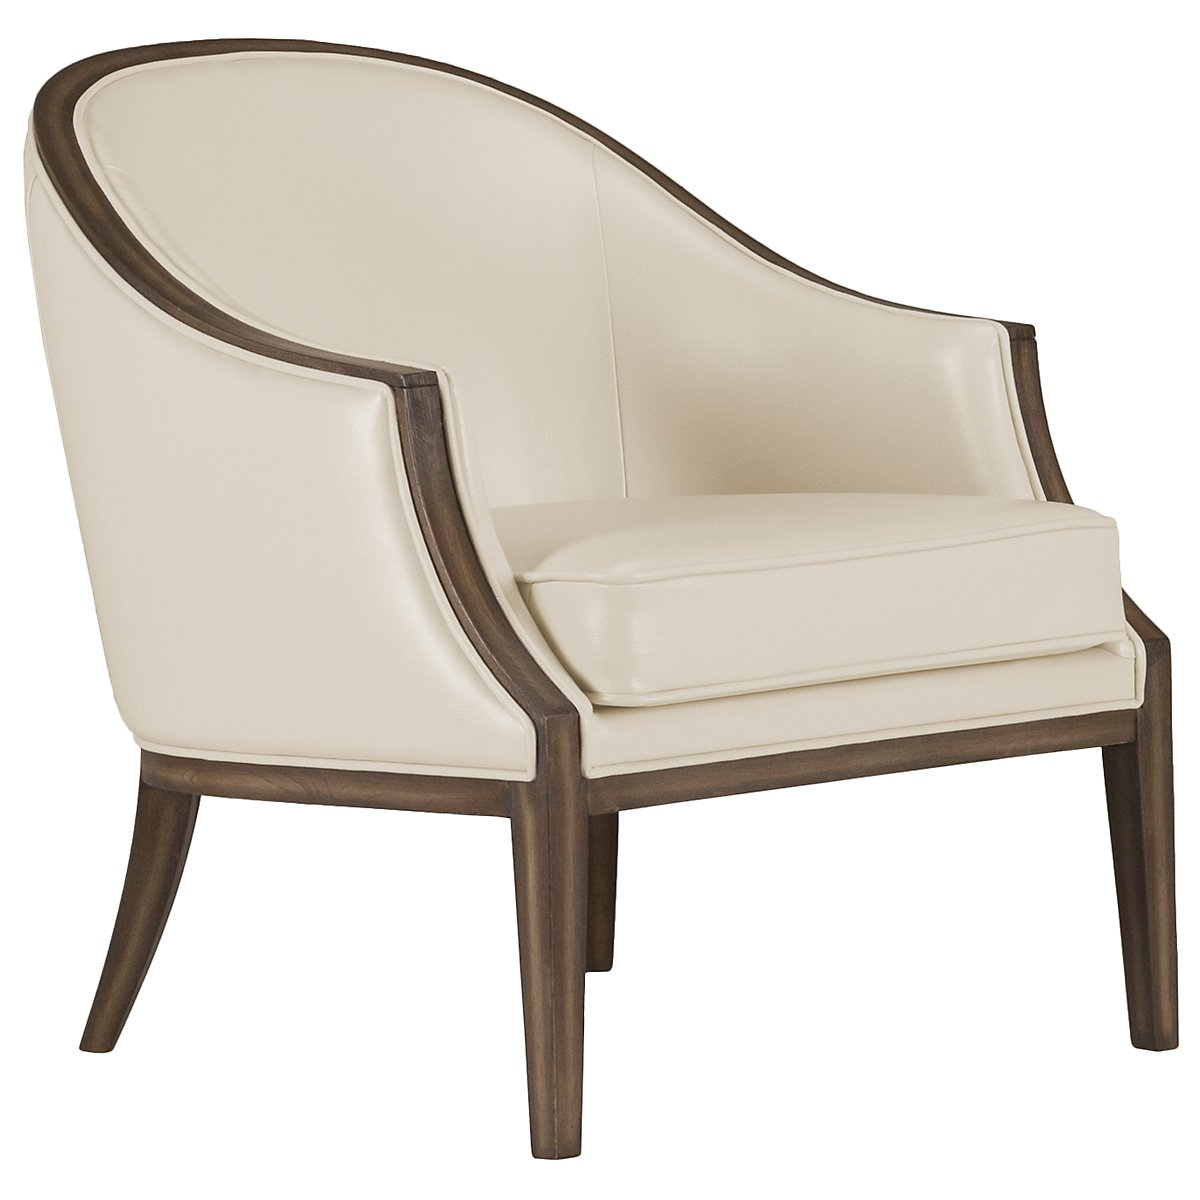 City furniture kensie lt beige bonded leather accent chair for Accent furniture